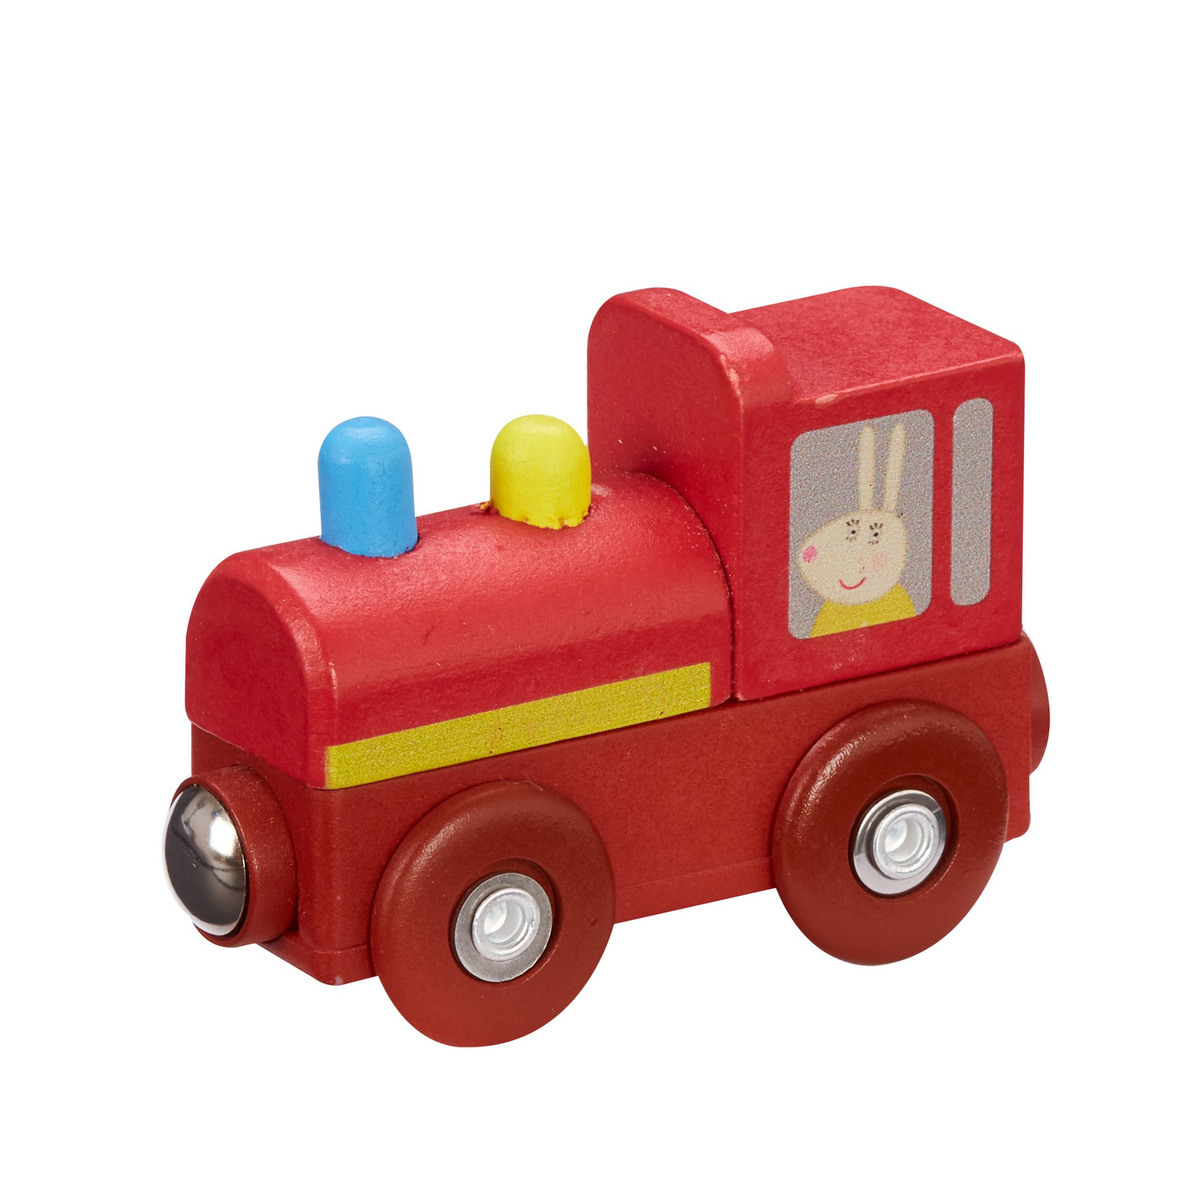 Peppa Pig Wooden Mini Vehicles - Train from Early Learning Center